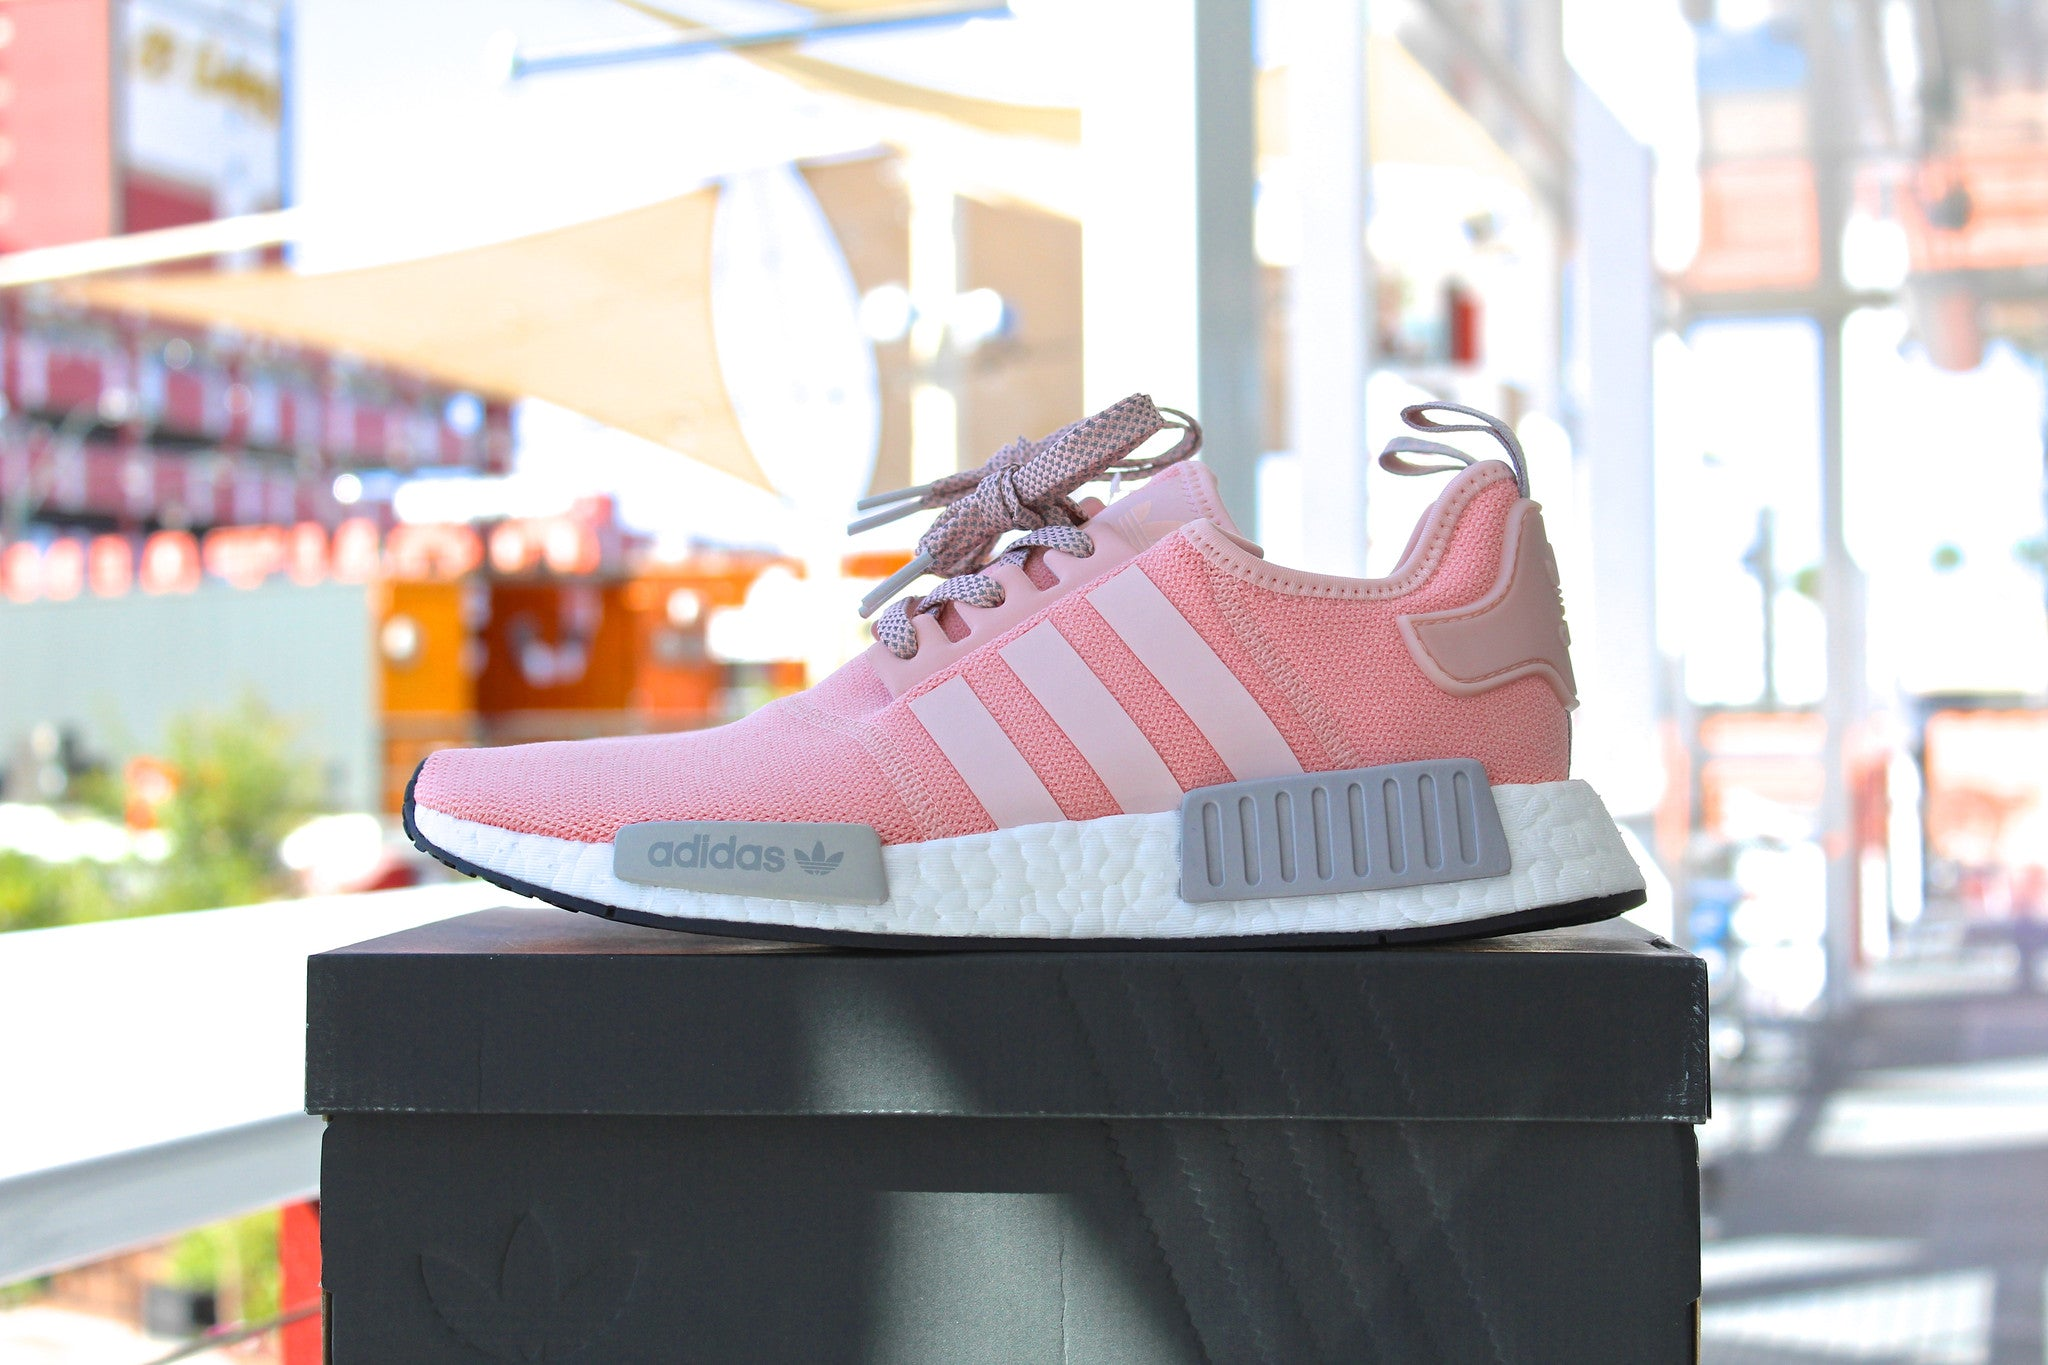 Adidas NMD R1 W (Vapour Pink)